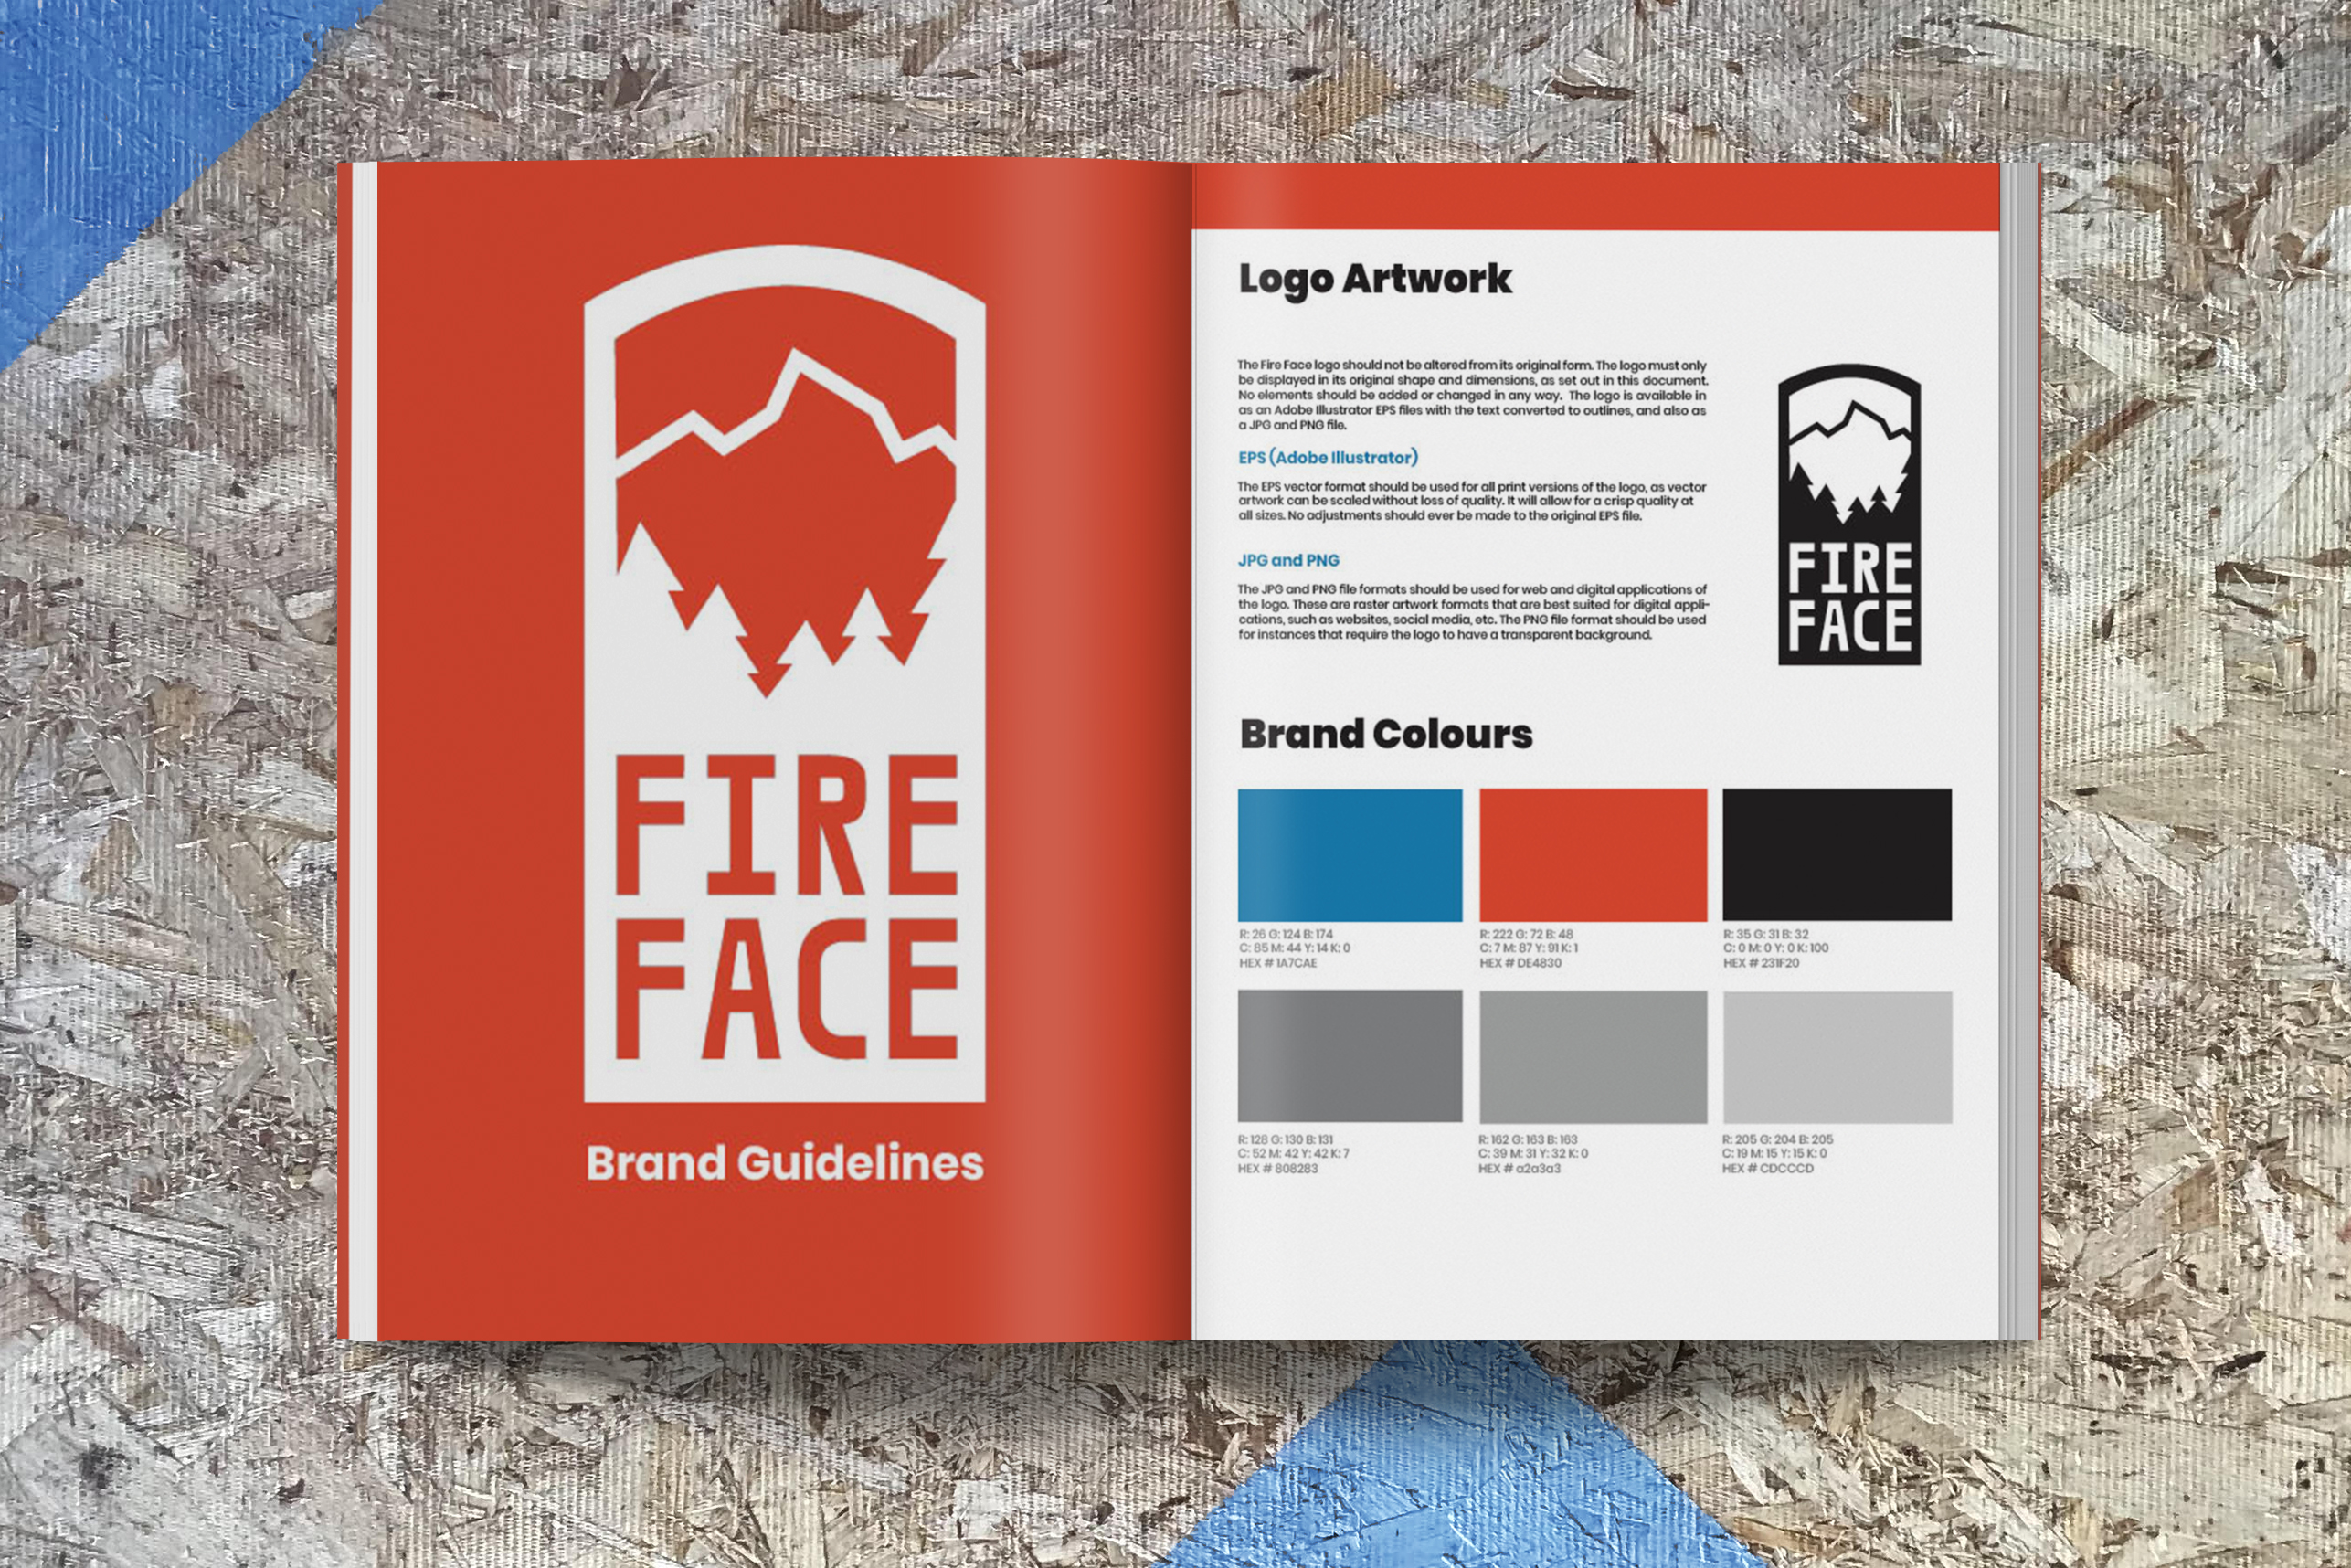 Image of the first page of the fire face brand guide